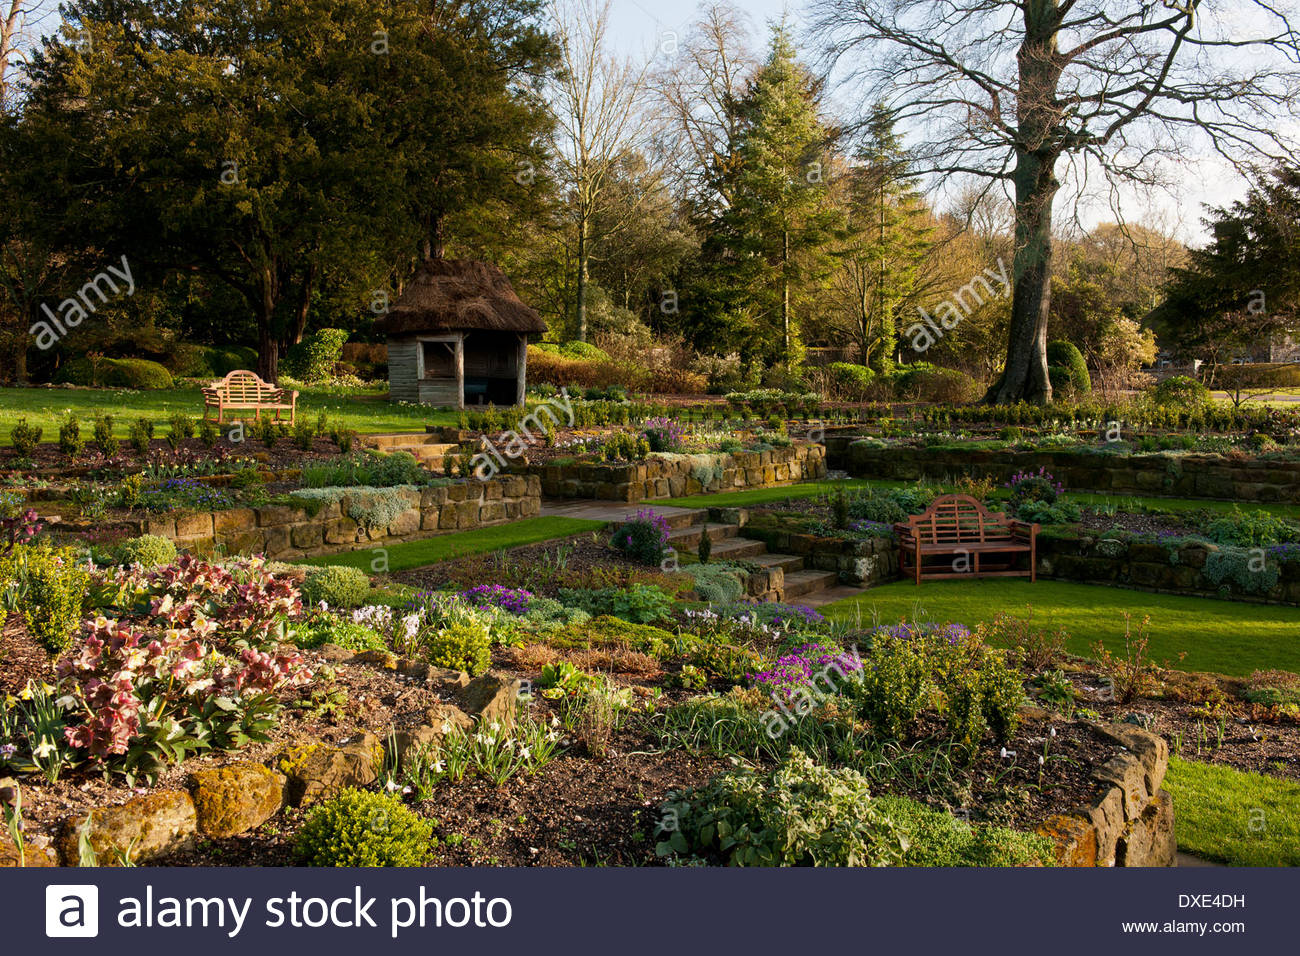 Planted Borders Stock Photos & Planted Borders Stock Images - Alamy